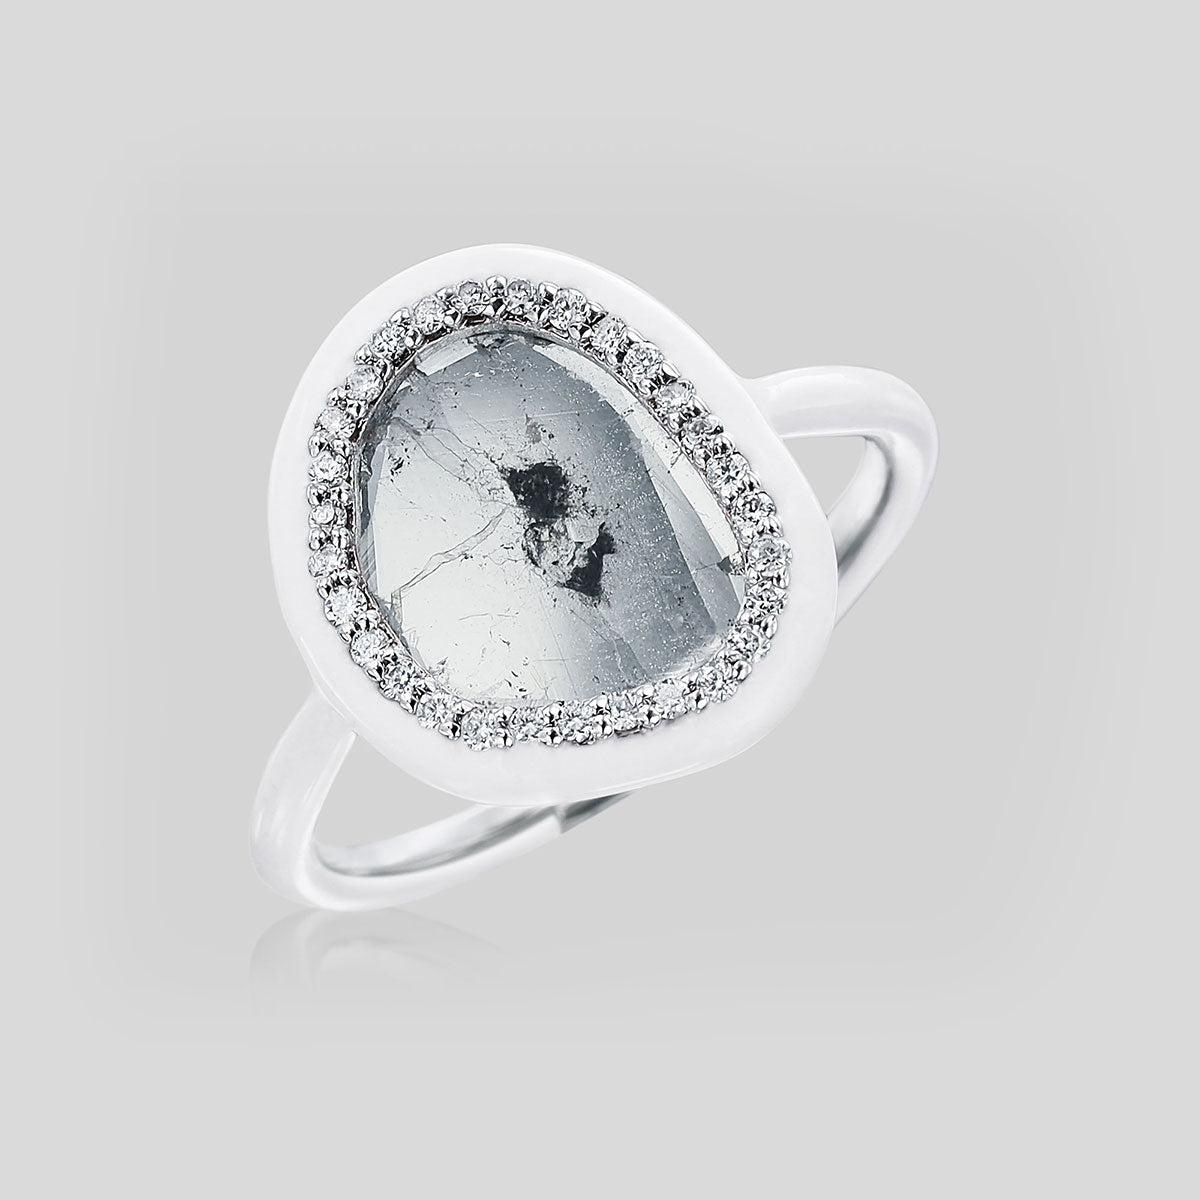 The Phoenix White Enamel Slice Diamond Ring